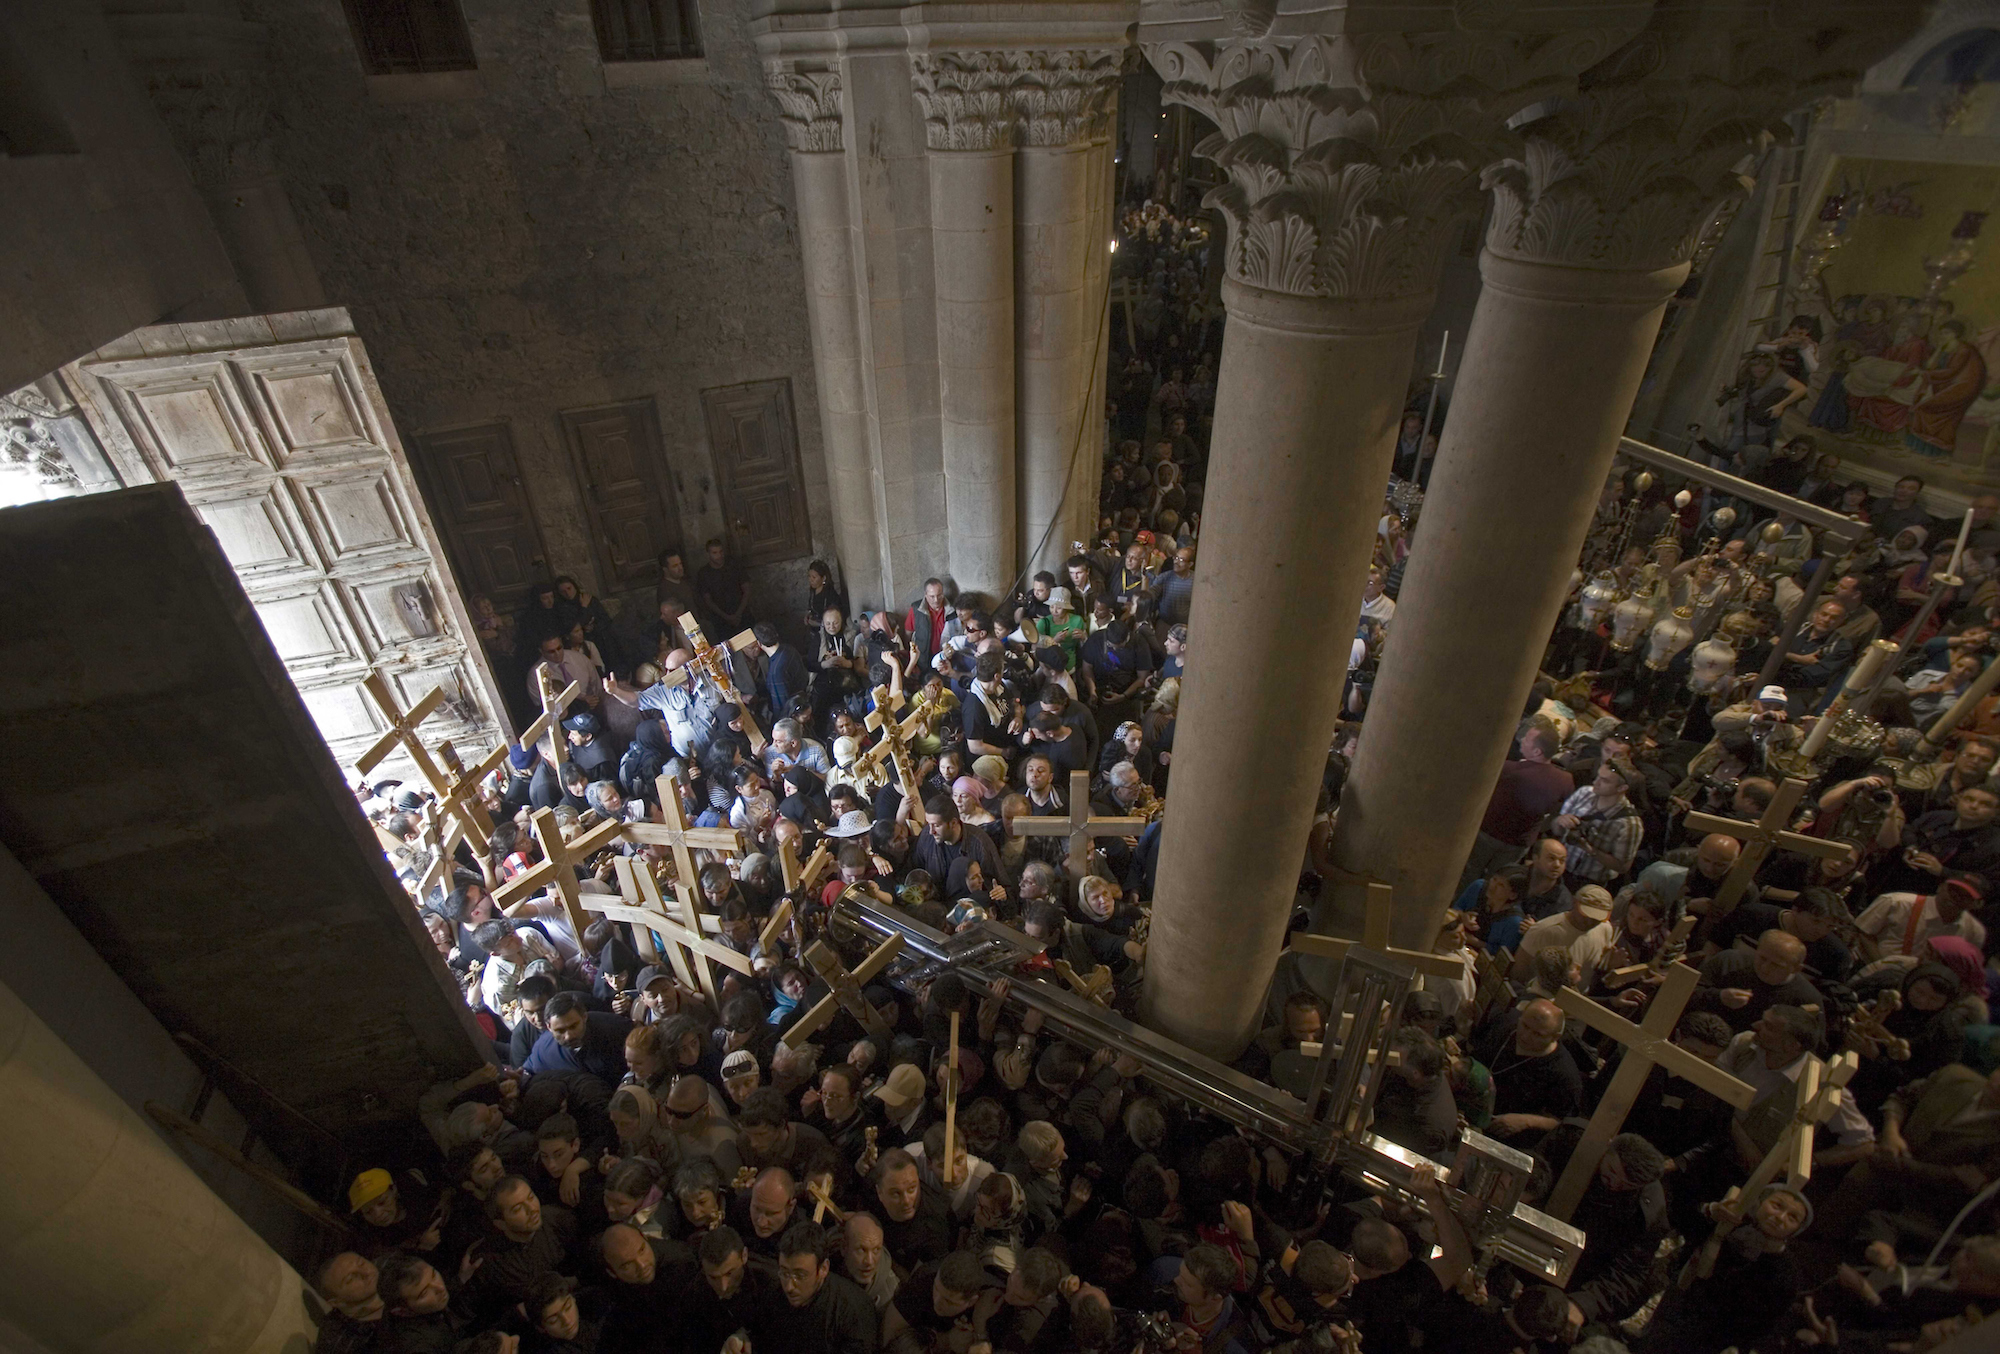 "Christian pilgrims carry crosses inside the Church of the Holy Sepulchre during a Good Friday procession in the Old city of Jerusalem on April 2, 2010. Christian worshippers retraced the route Jesus Christ took along the Via Dolorosa, or ""Way of Sorrow"", towards his crucifixion in the Church of the Holy Sepulchre. (Photo by Heidi Levine/Sipa Press)."